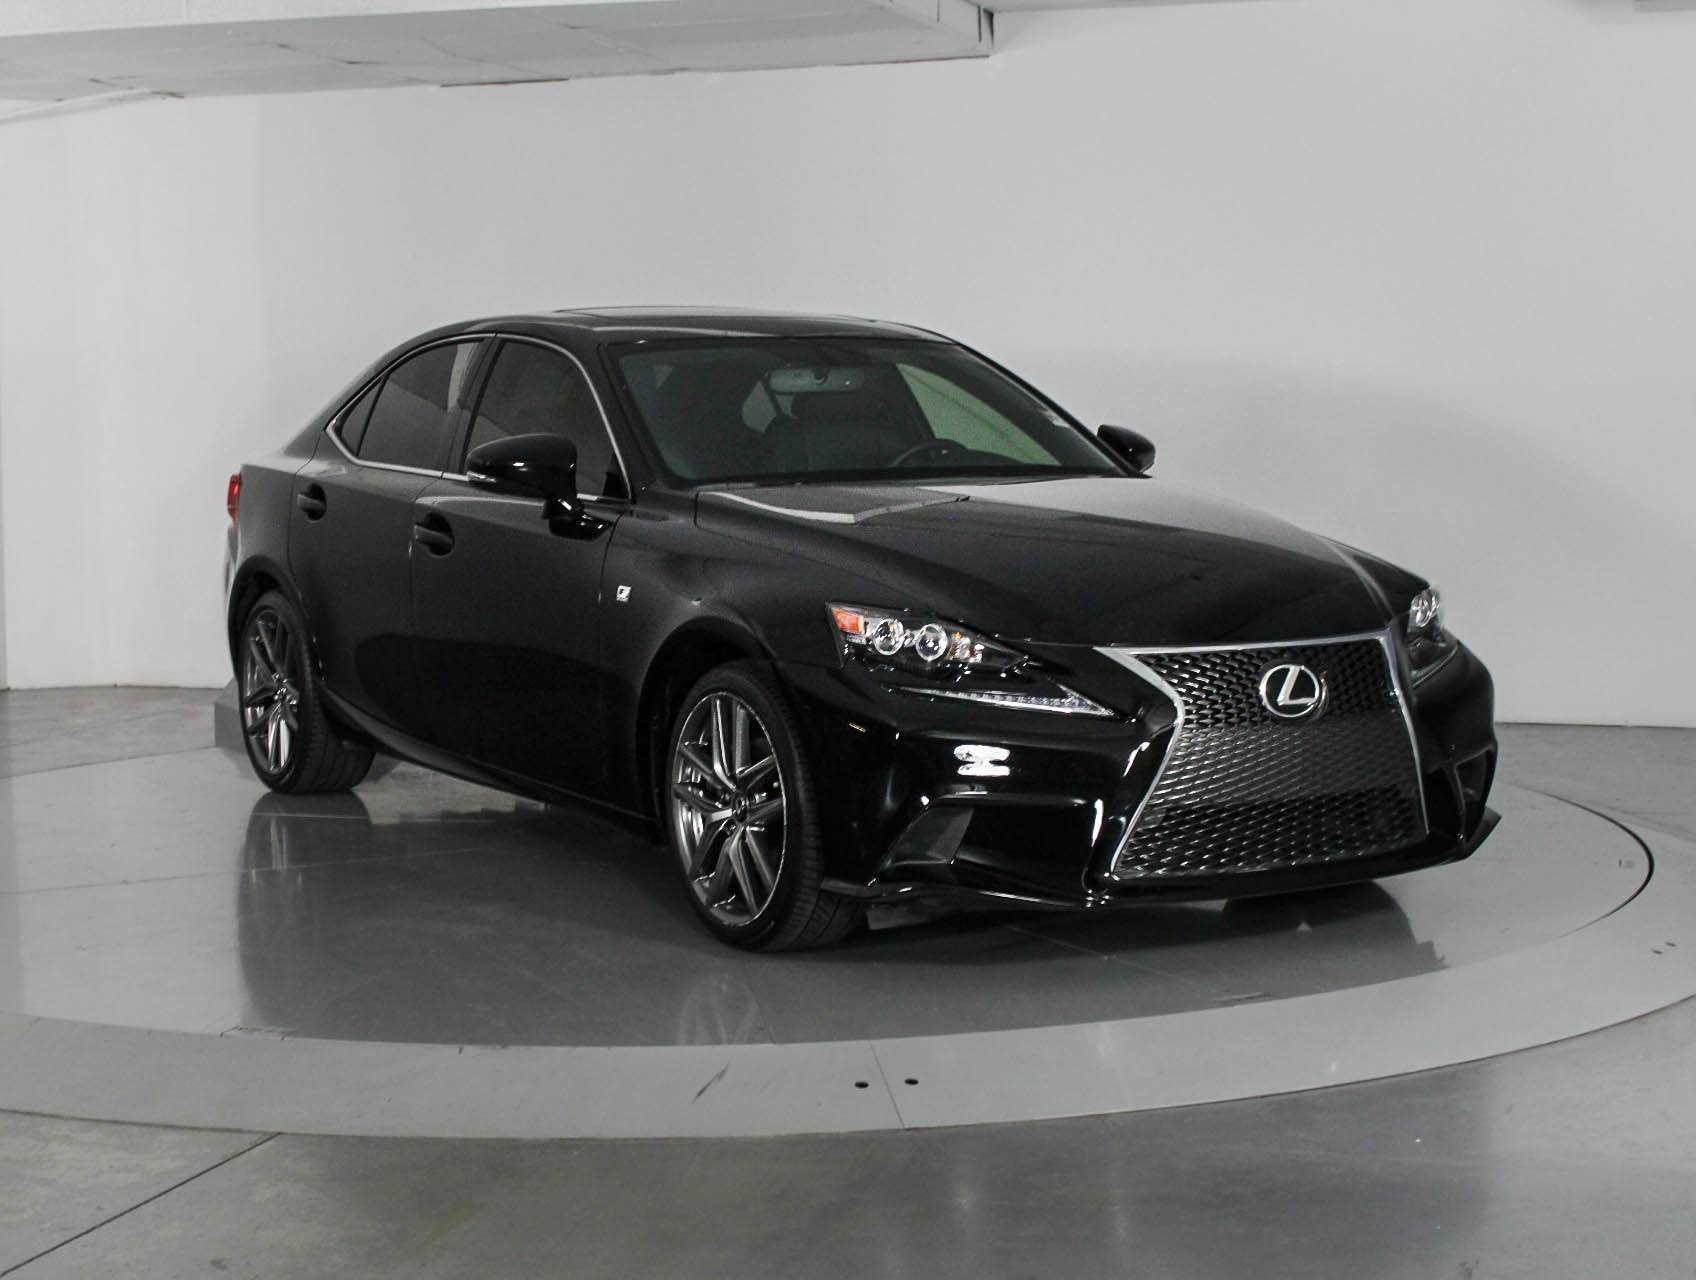 Used 2014 LEXUS IS 250 F Sport Sedan for sale in WEST PALM FL